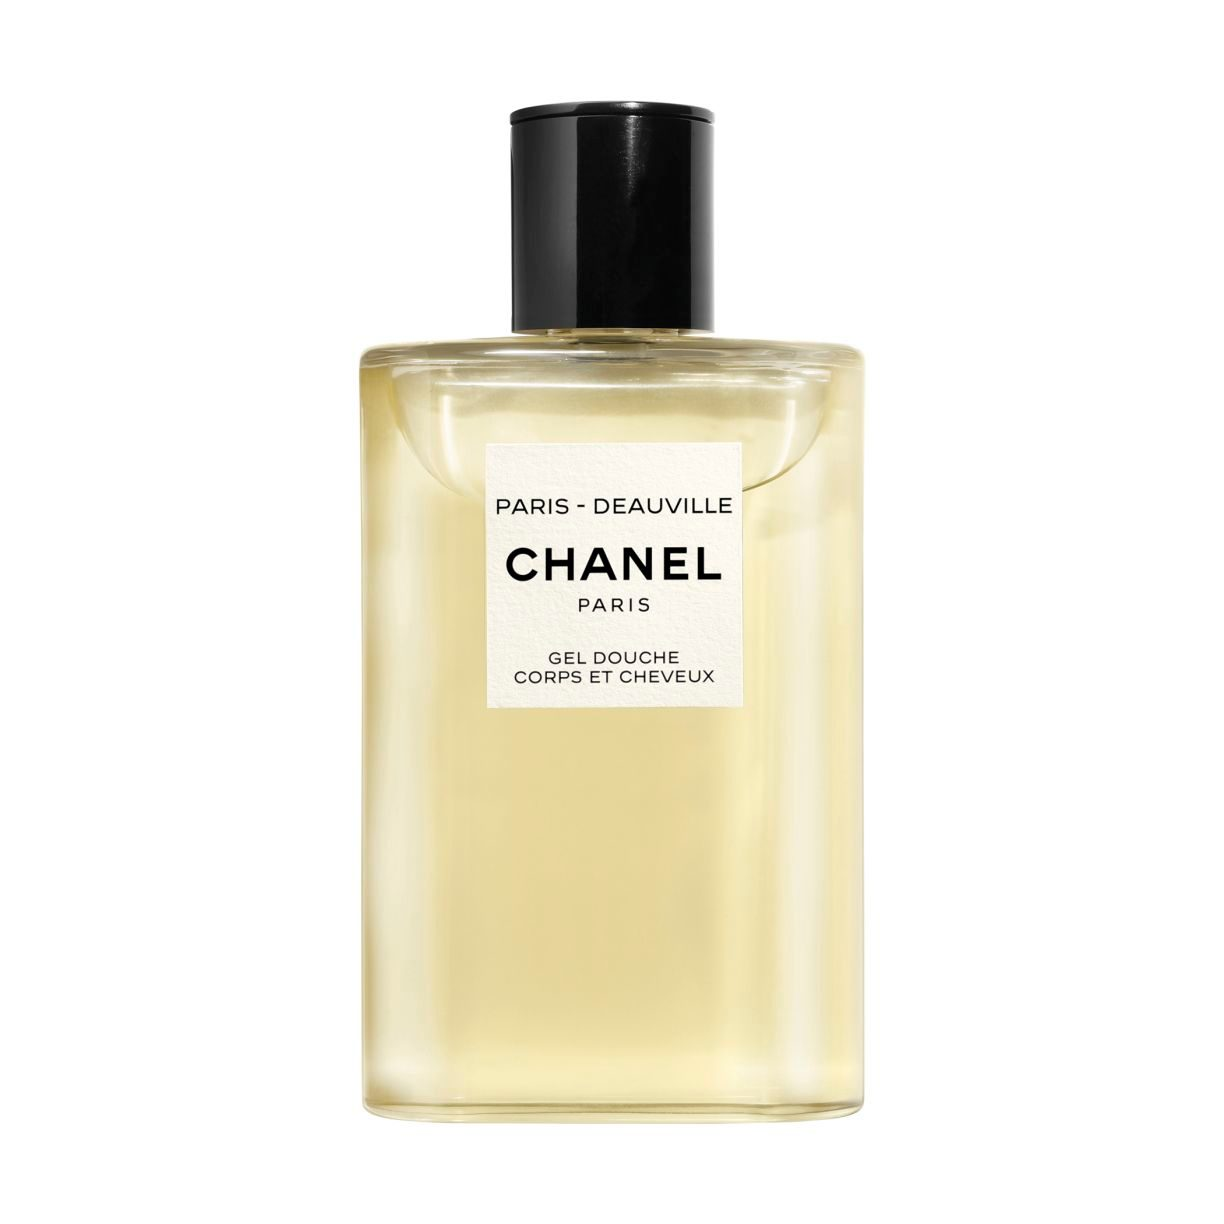 LES EAUX DE CHANEL PARIS - DEAUVILLE - HAIR AND BODY SHOWER GEL 200ml